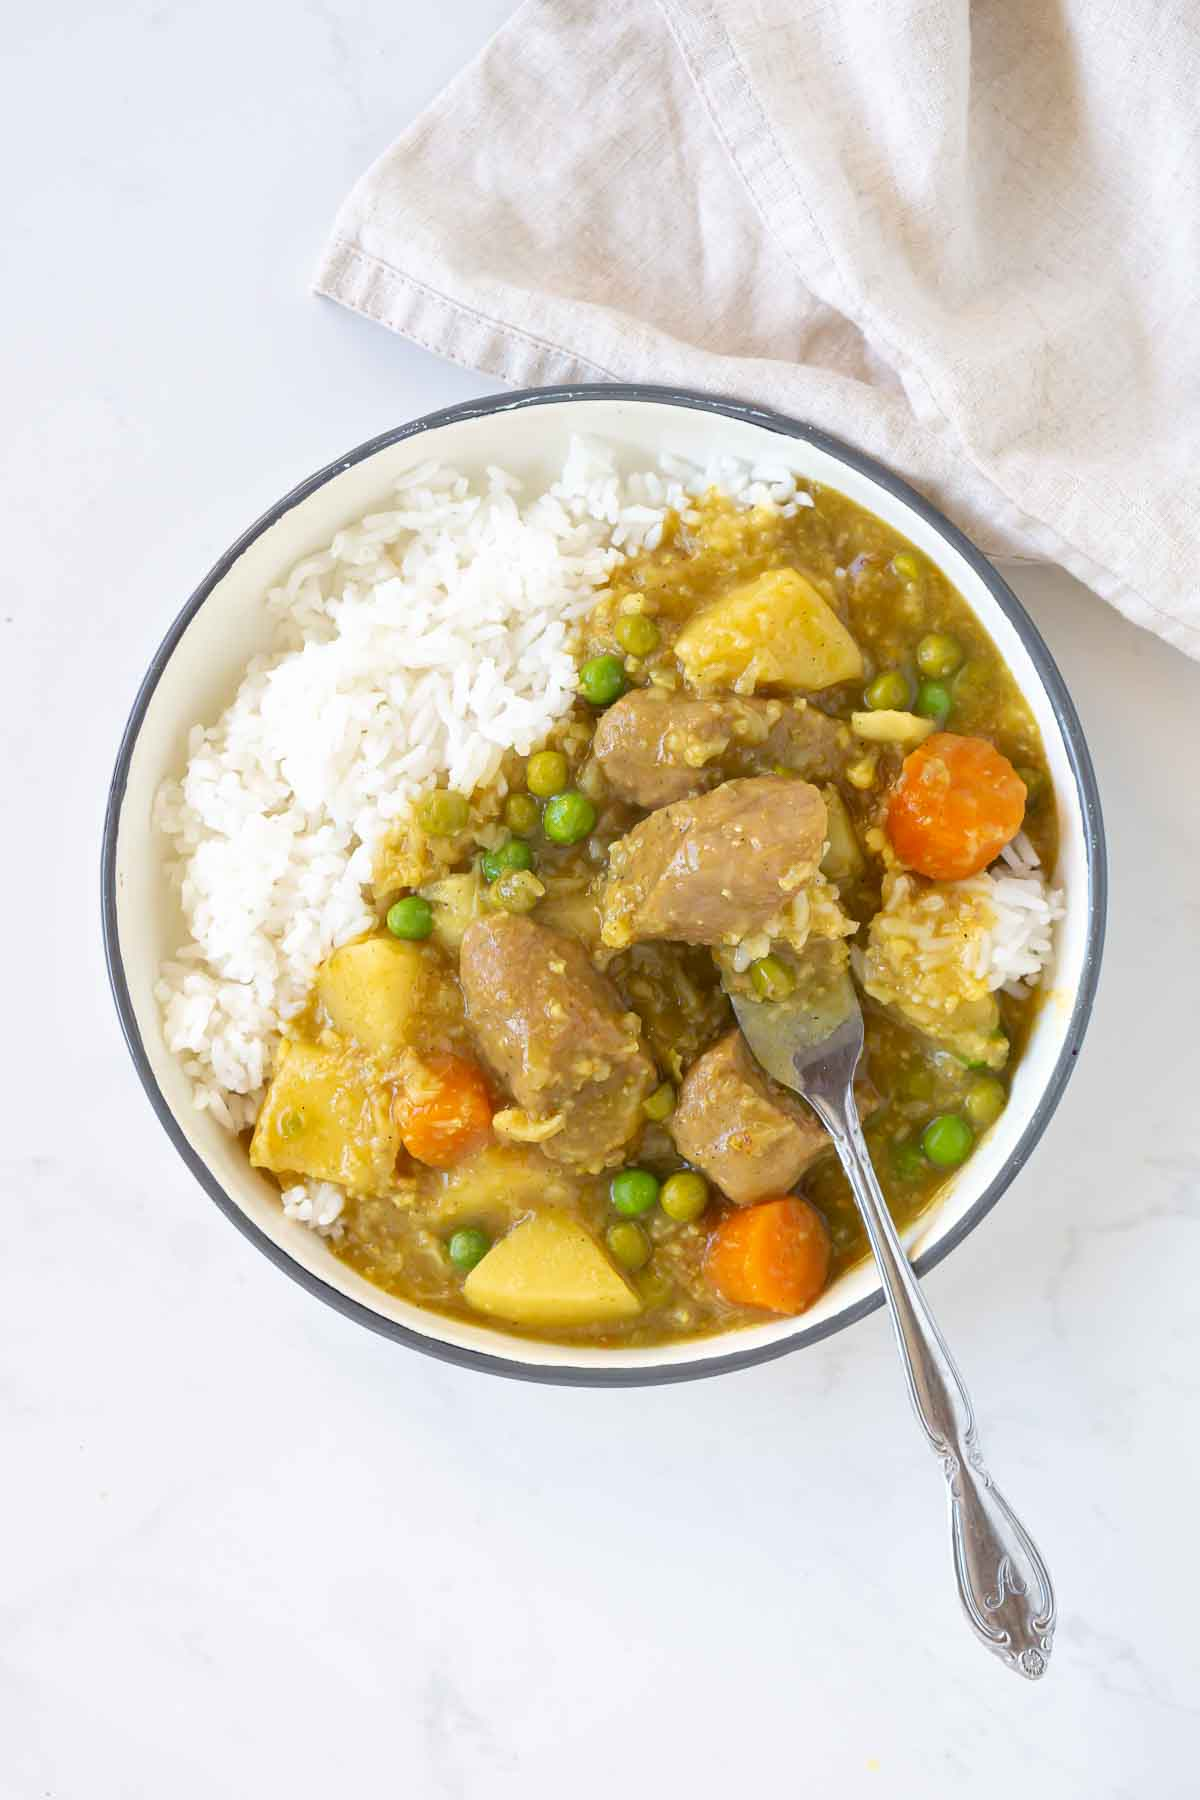 plate of curried sausages